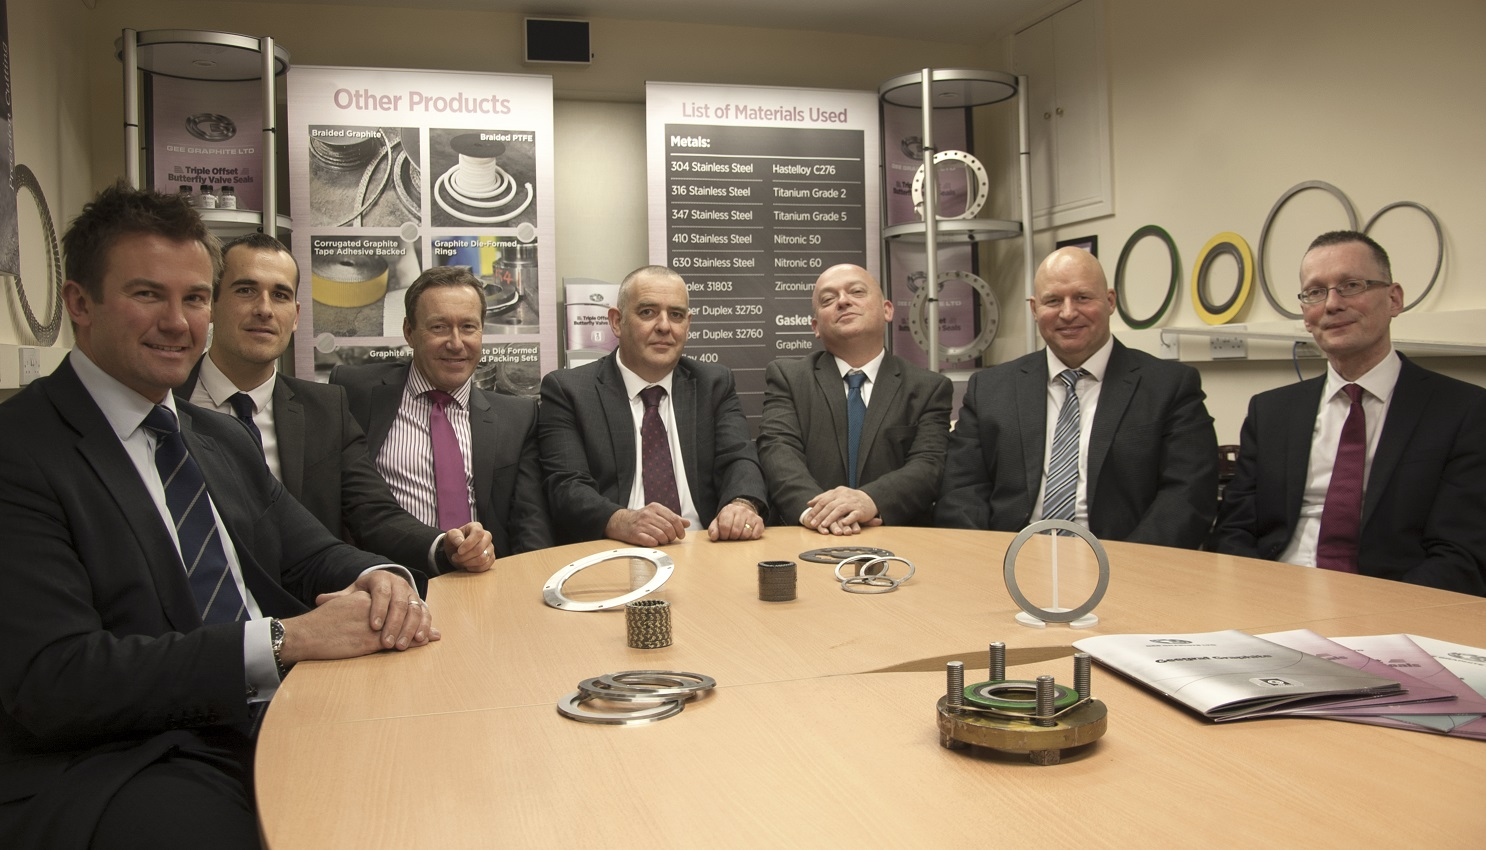 Seven suited men sitting around an oval table surrounded by industrial products on the table and point of sale behind them.